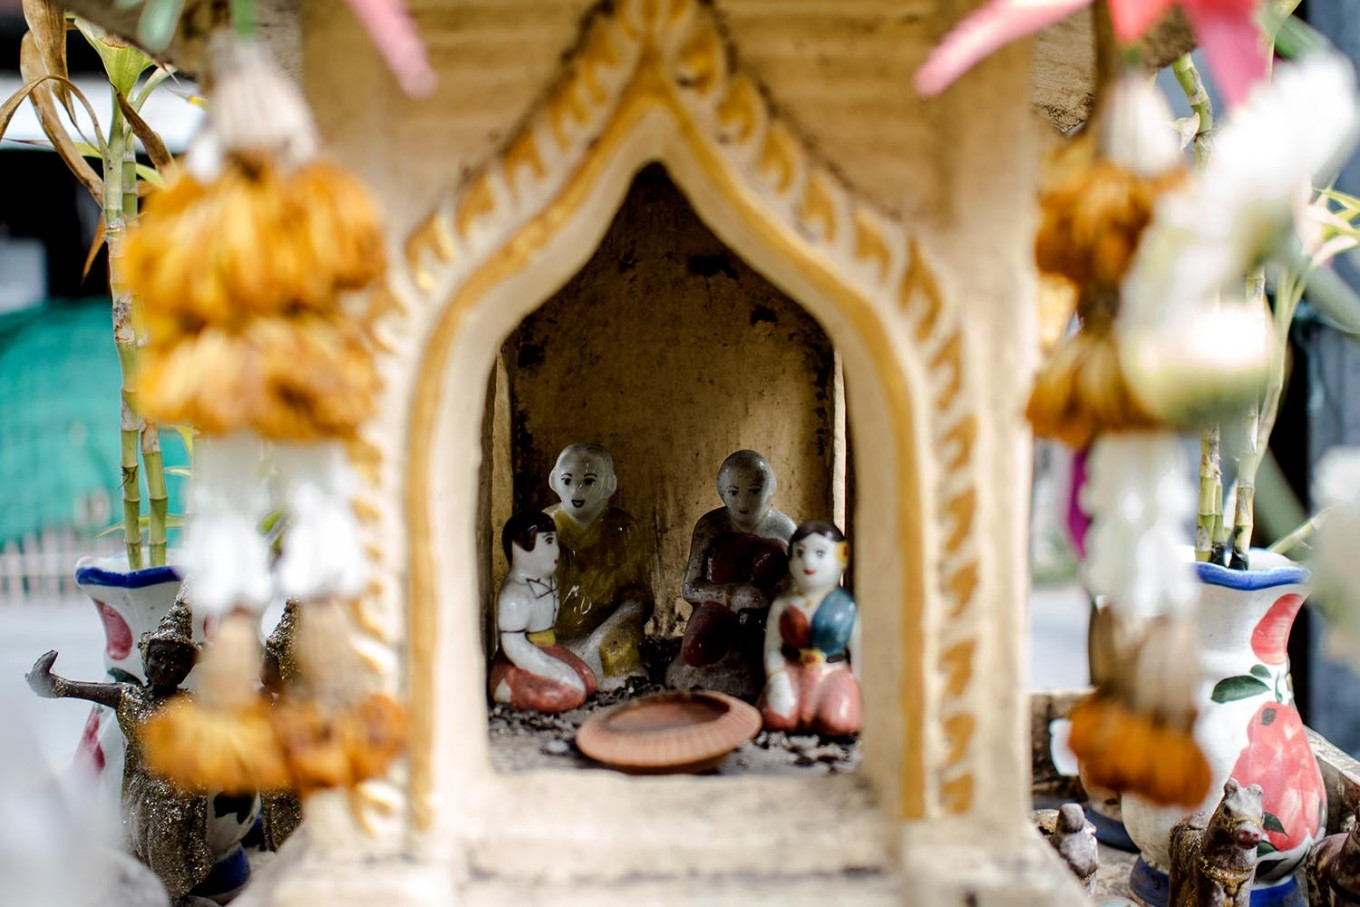 Small porcelain dolls inside a spirit house in Thailand. JP/Anggara Mahendra